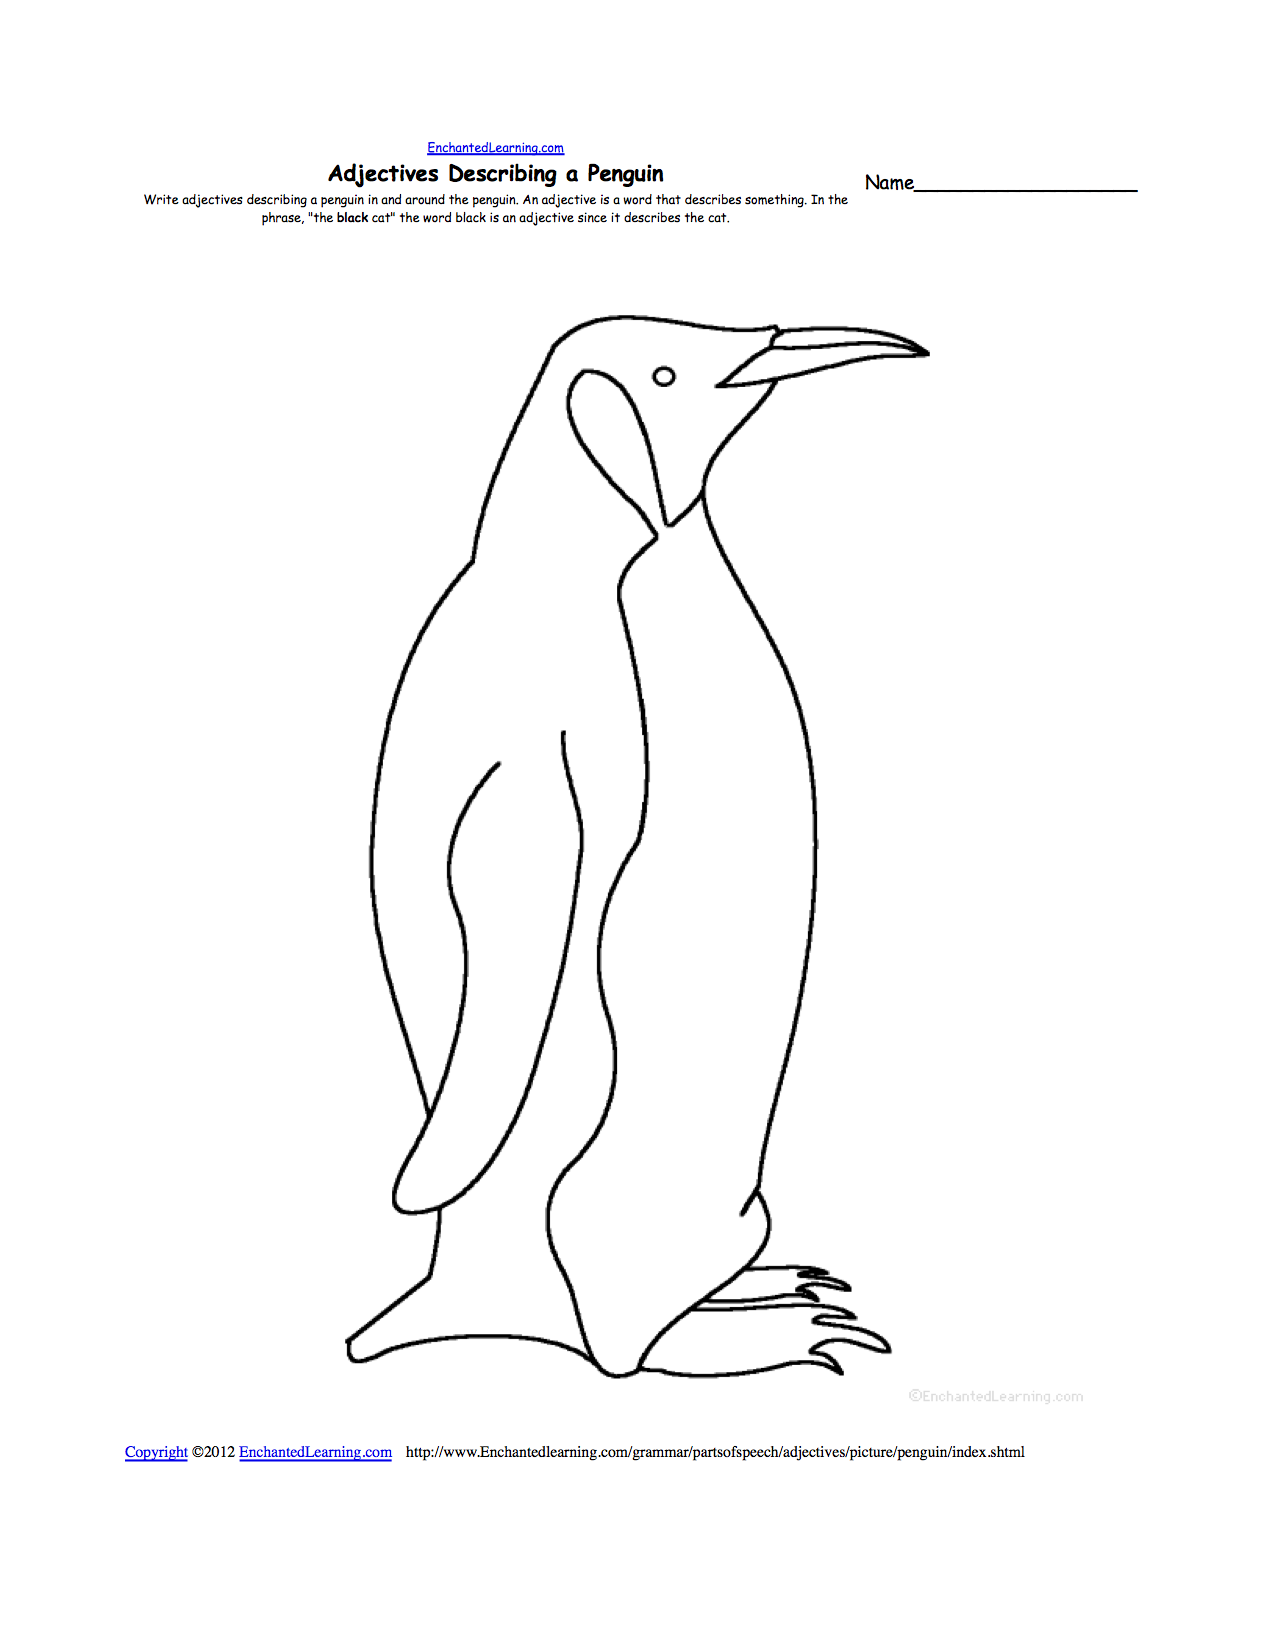 Penguins at EnchantedLearning.com